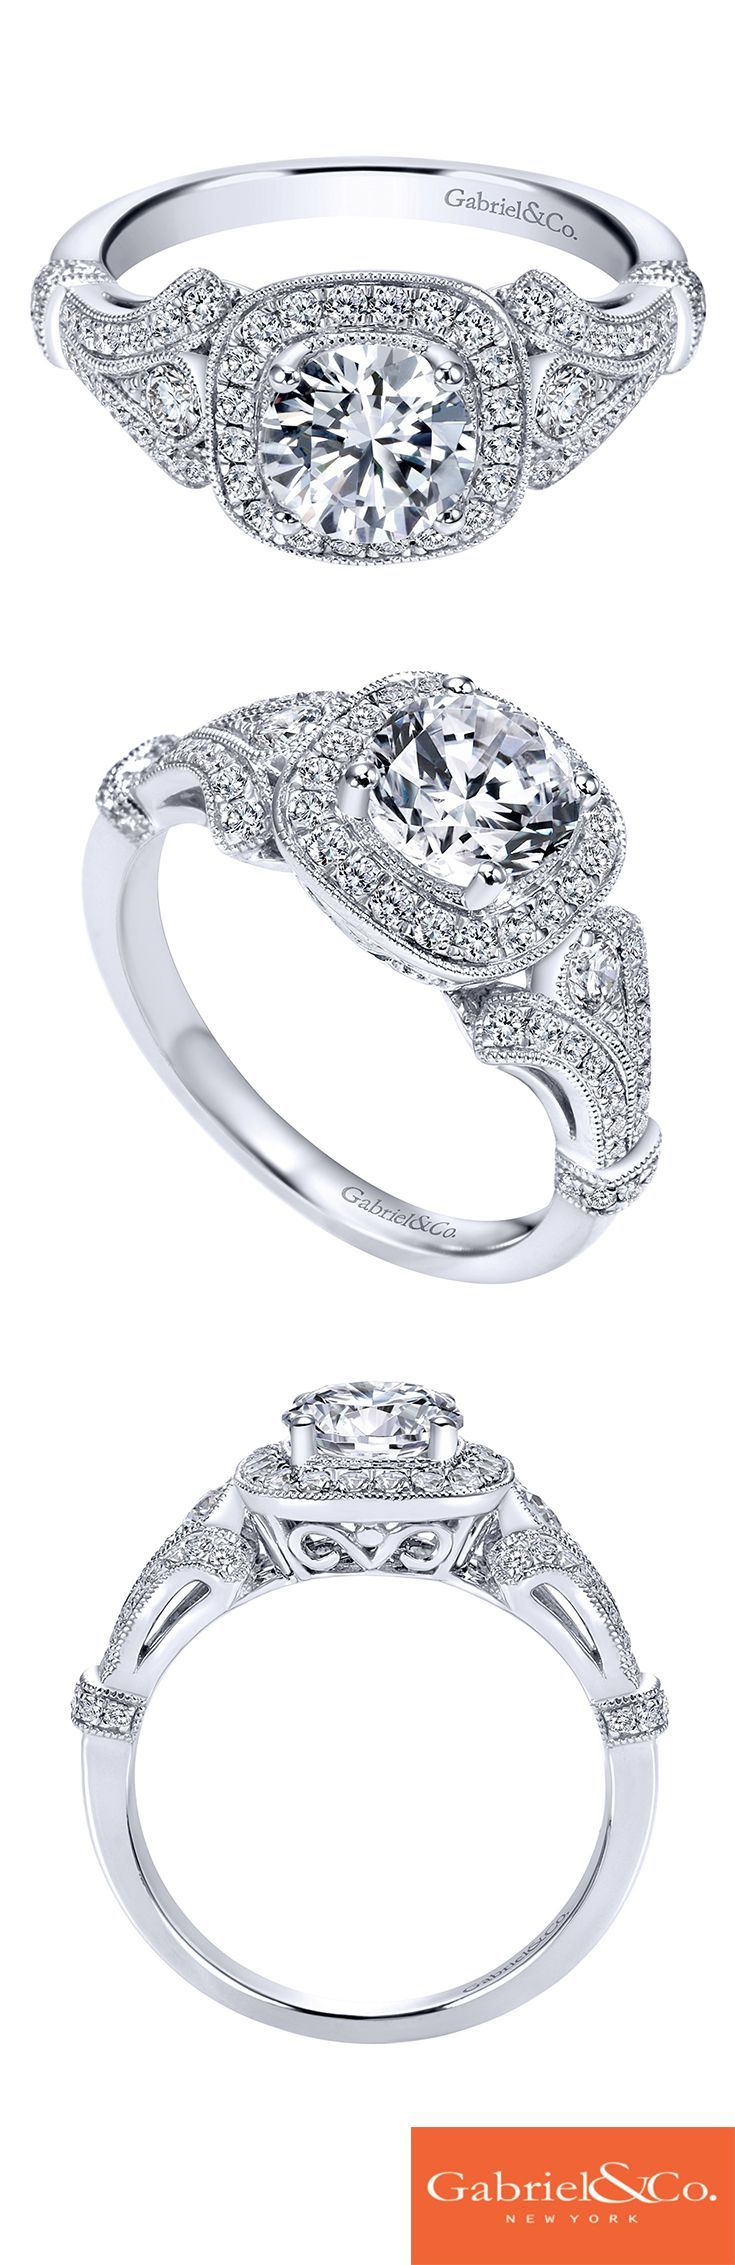 14k White Gold Diamond Halo And Filgree Setting Engagement Ring